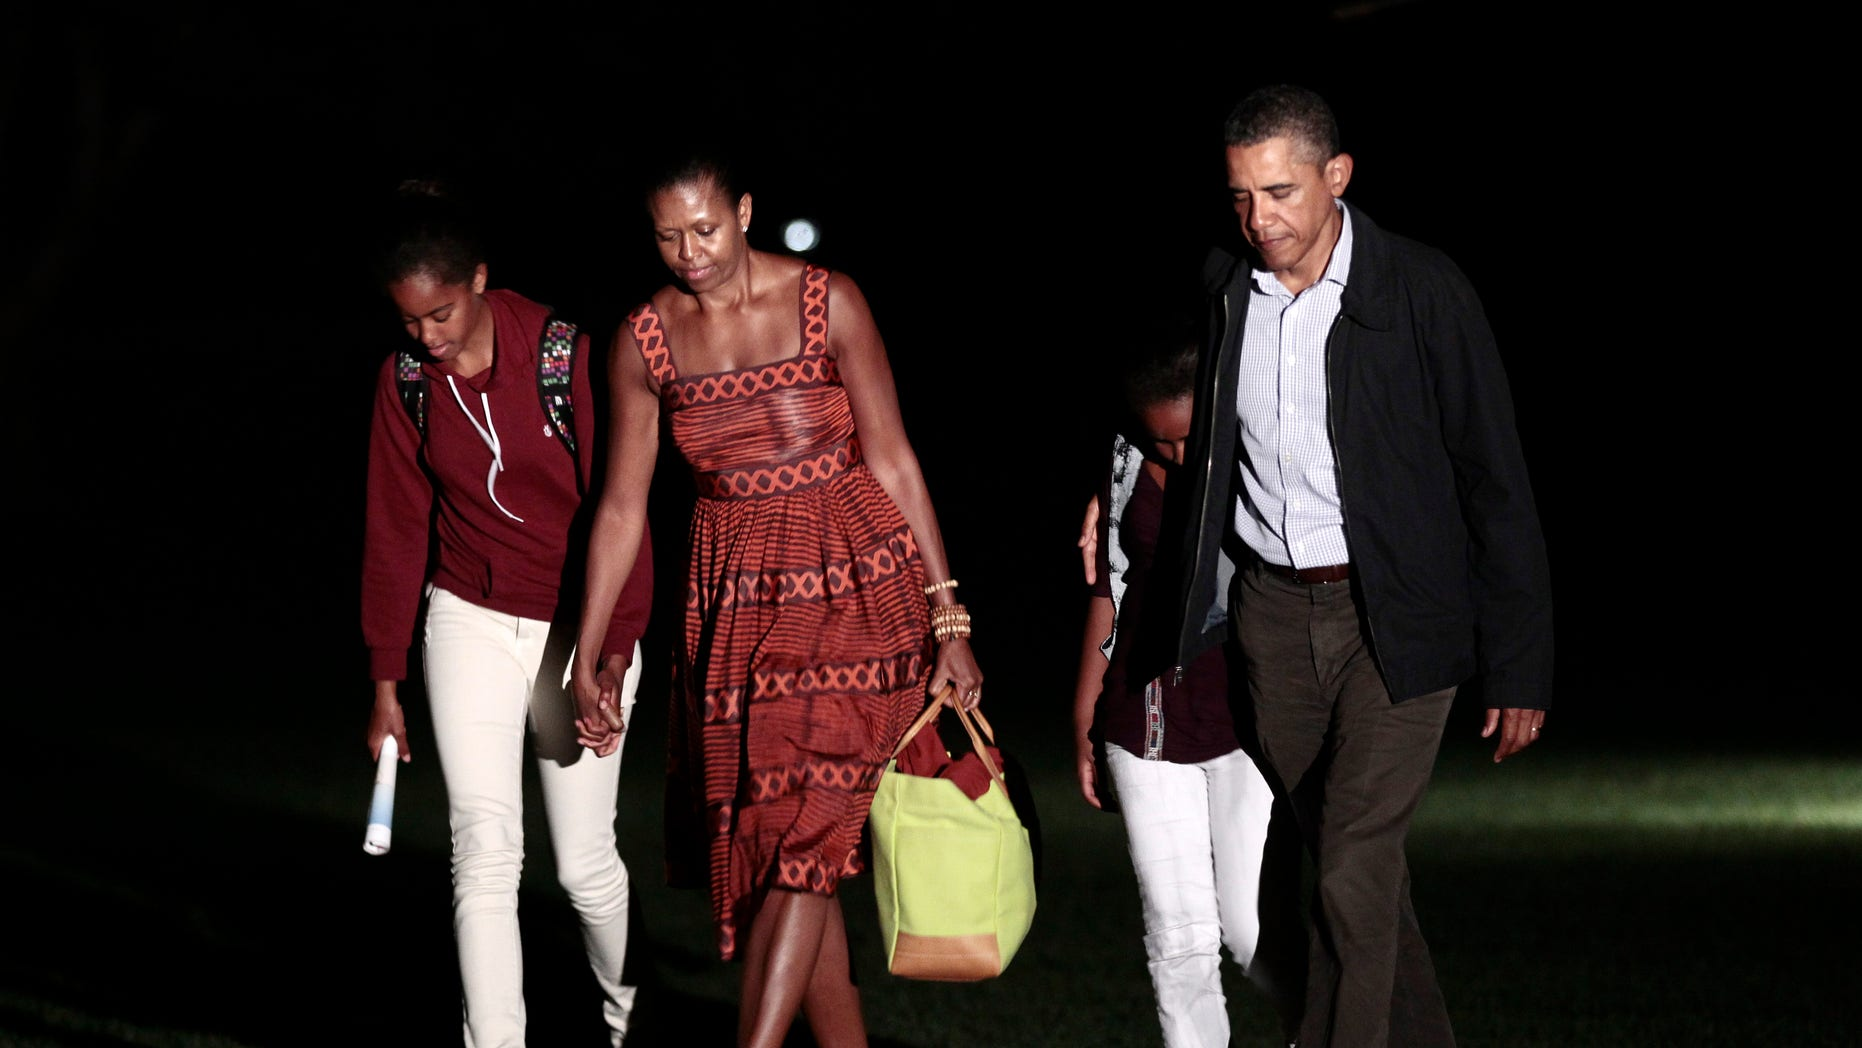 President Obama, first lady Michelle Obama and their daughters Sasha and Malia, far left, walk across the South Lawn of the White House in Washington, Friday, Aug., 26, 2011, after a family vacation on Martha's Vineyard.